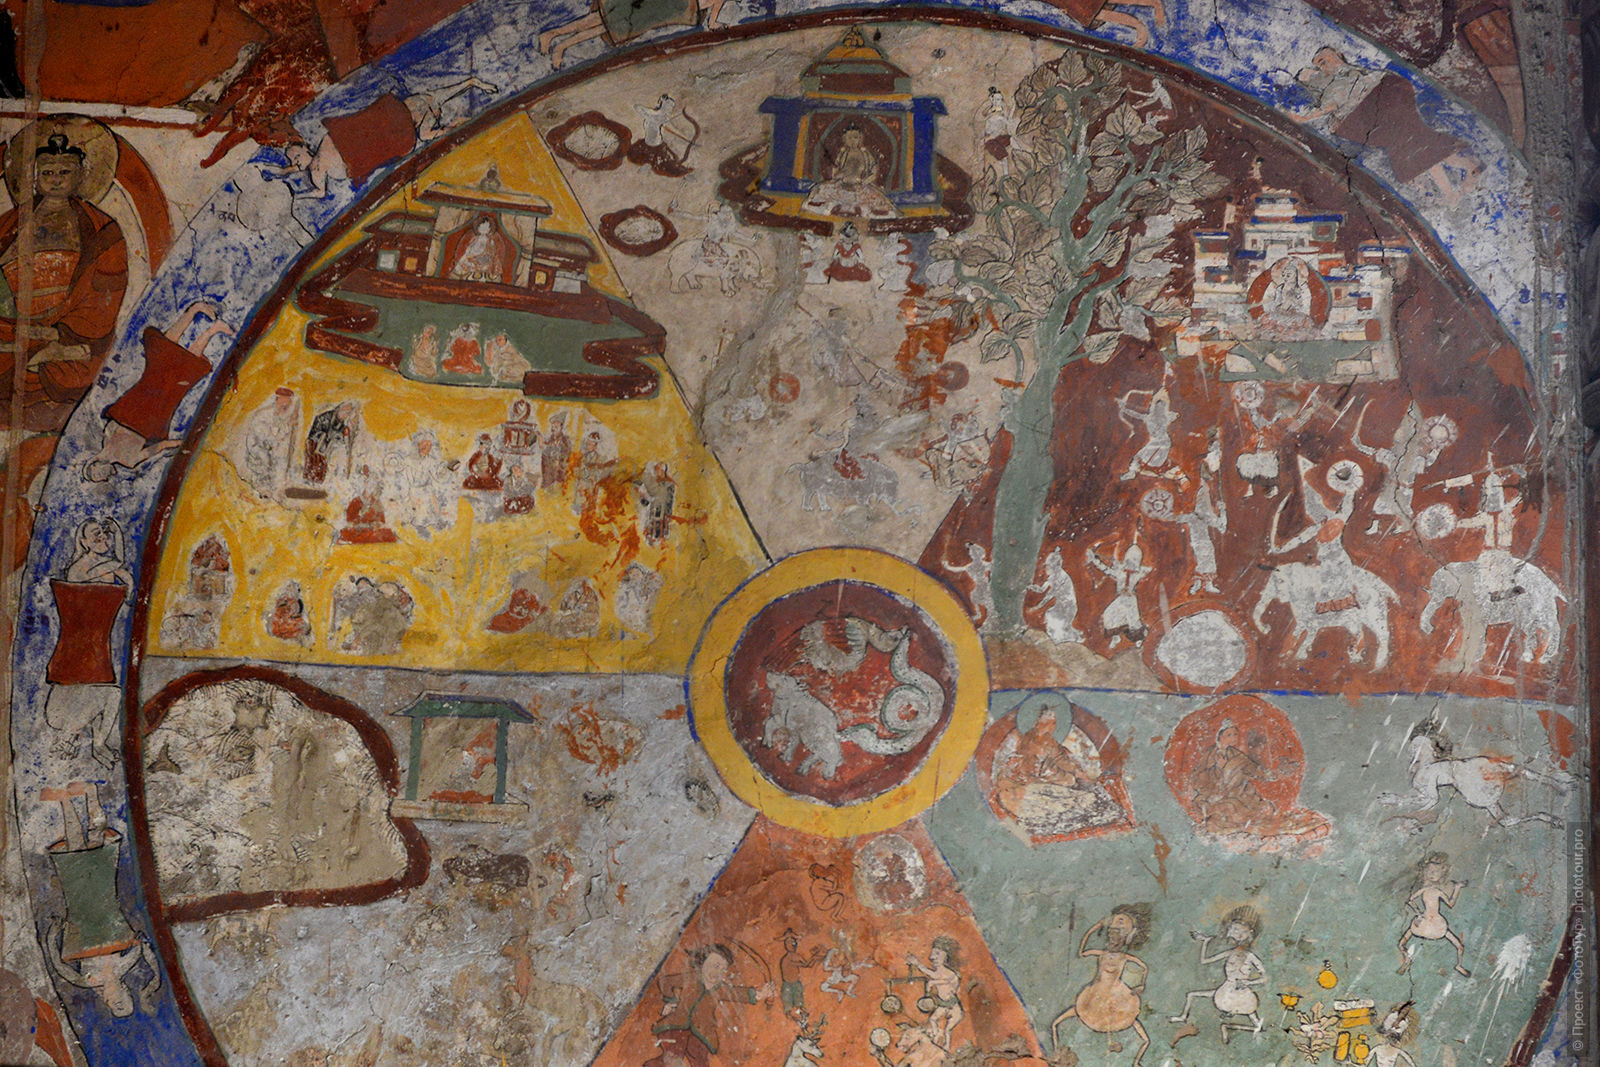 The Wheel of Samsara (Wheel of Life) at the Buddhist monastery of Alchi. Tour of Ladakh valley, Himalayas, 2017.